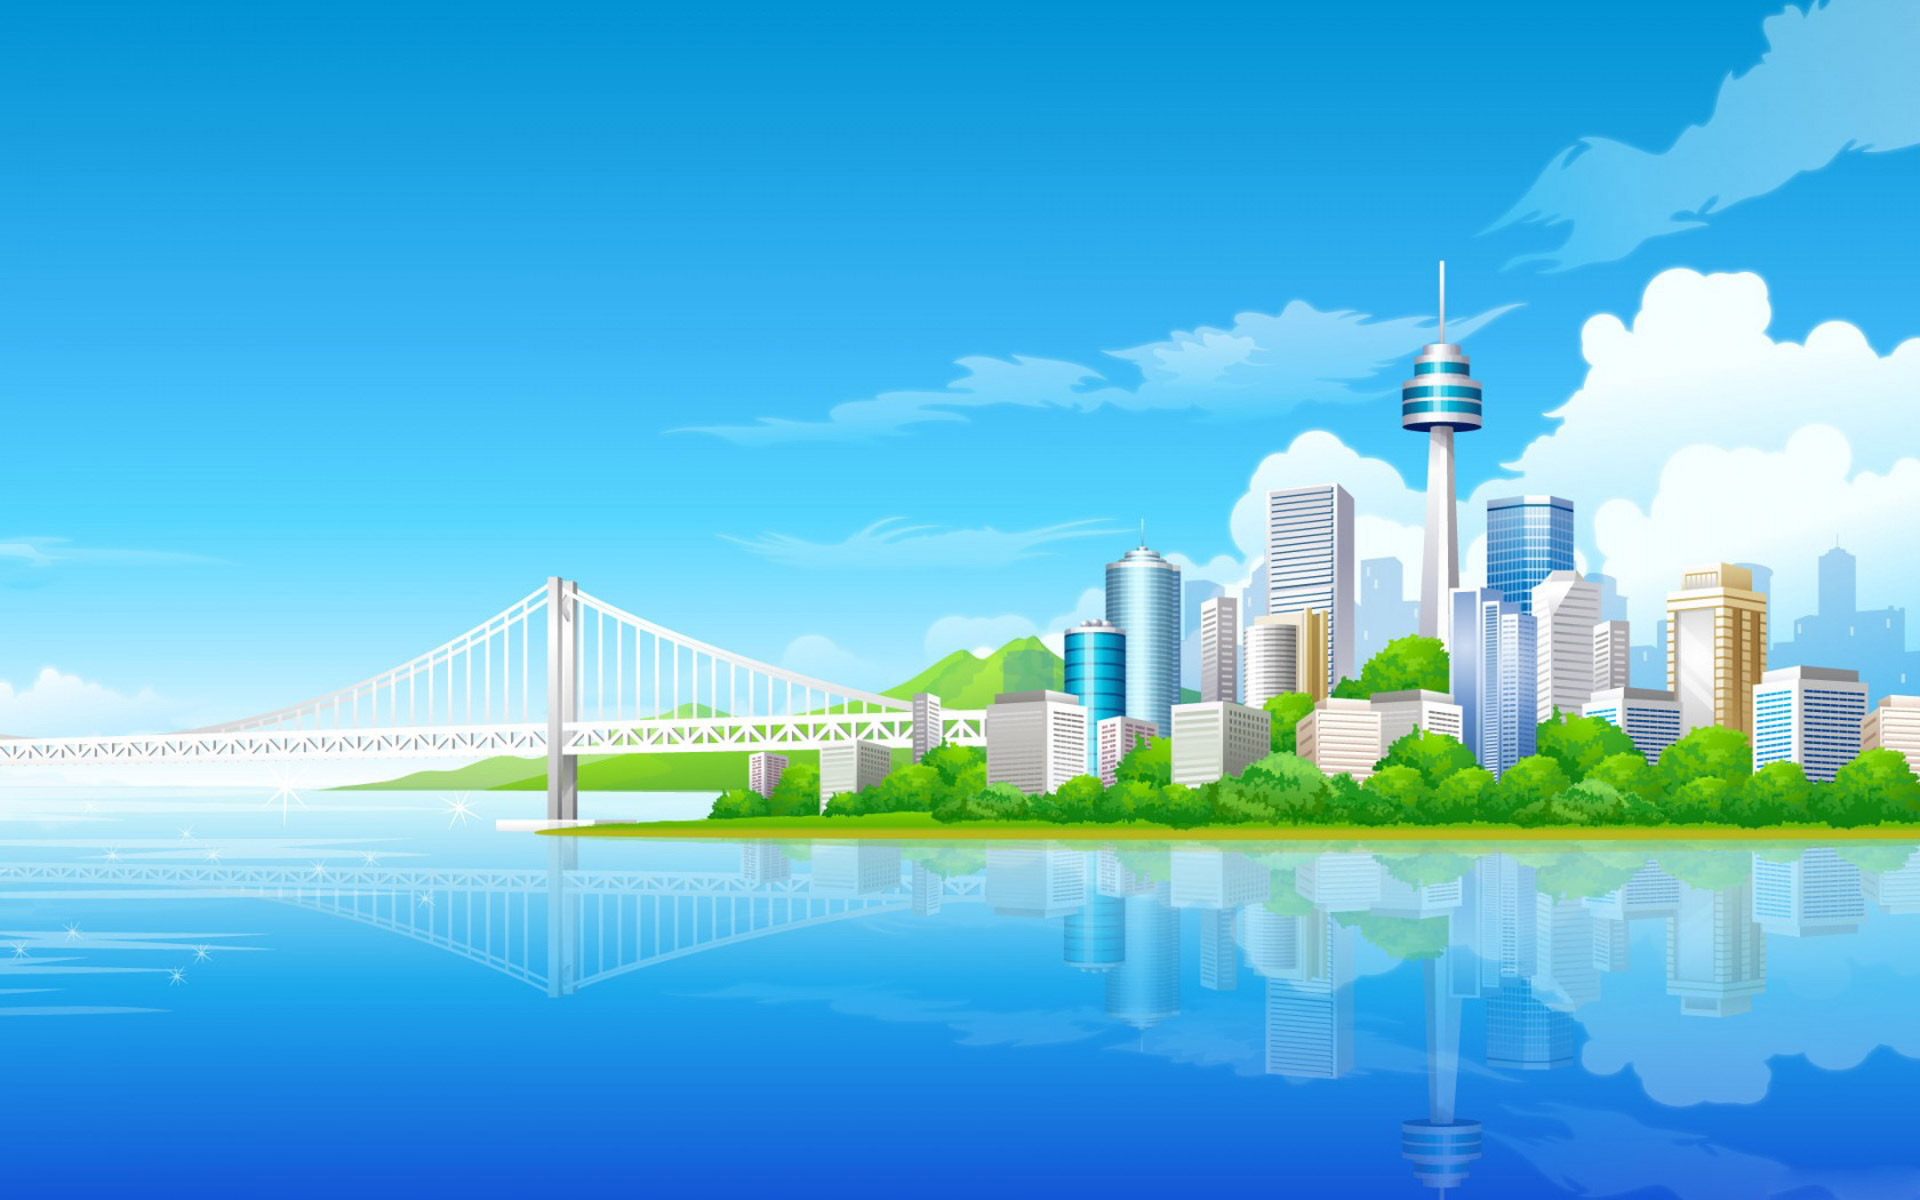 Animated Green Buildings : City wallpaper clipart clipground